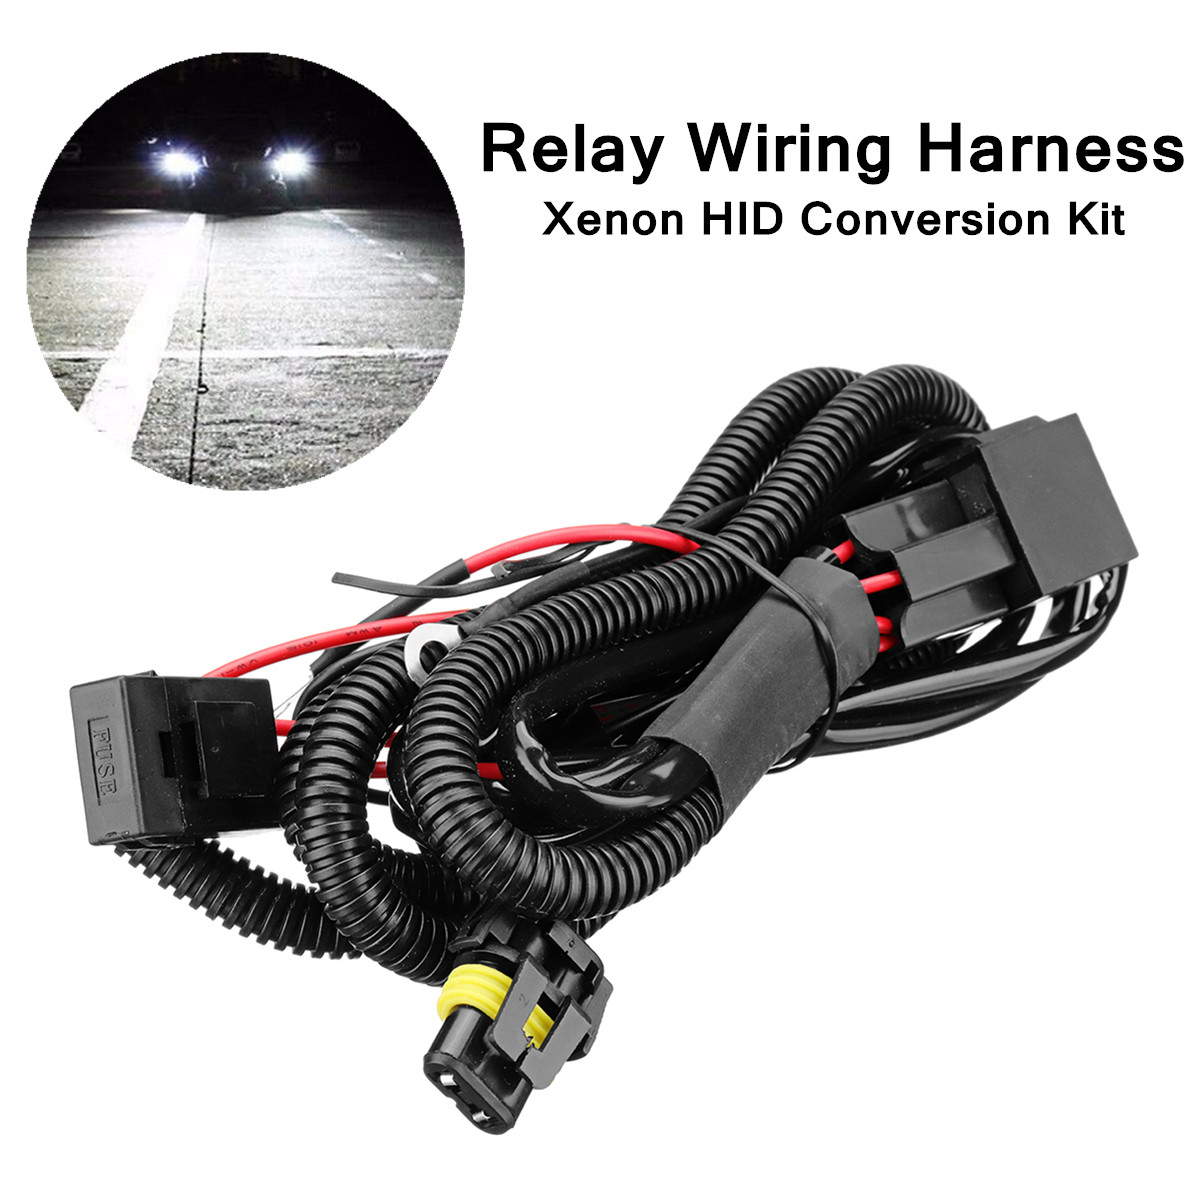 US $7.02 54% OFF|Relay Wiring Harness Xenon HID Conversion Kit For on